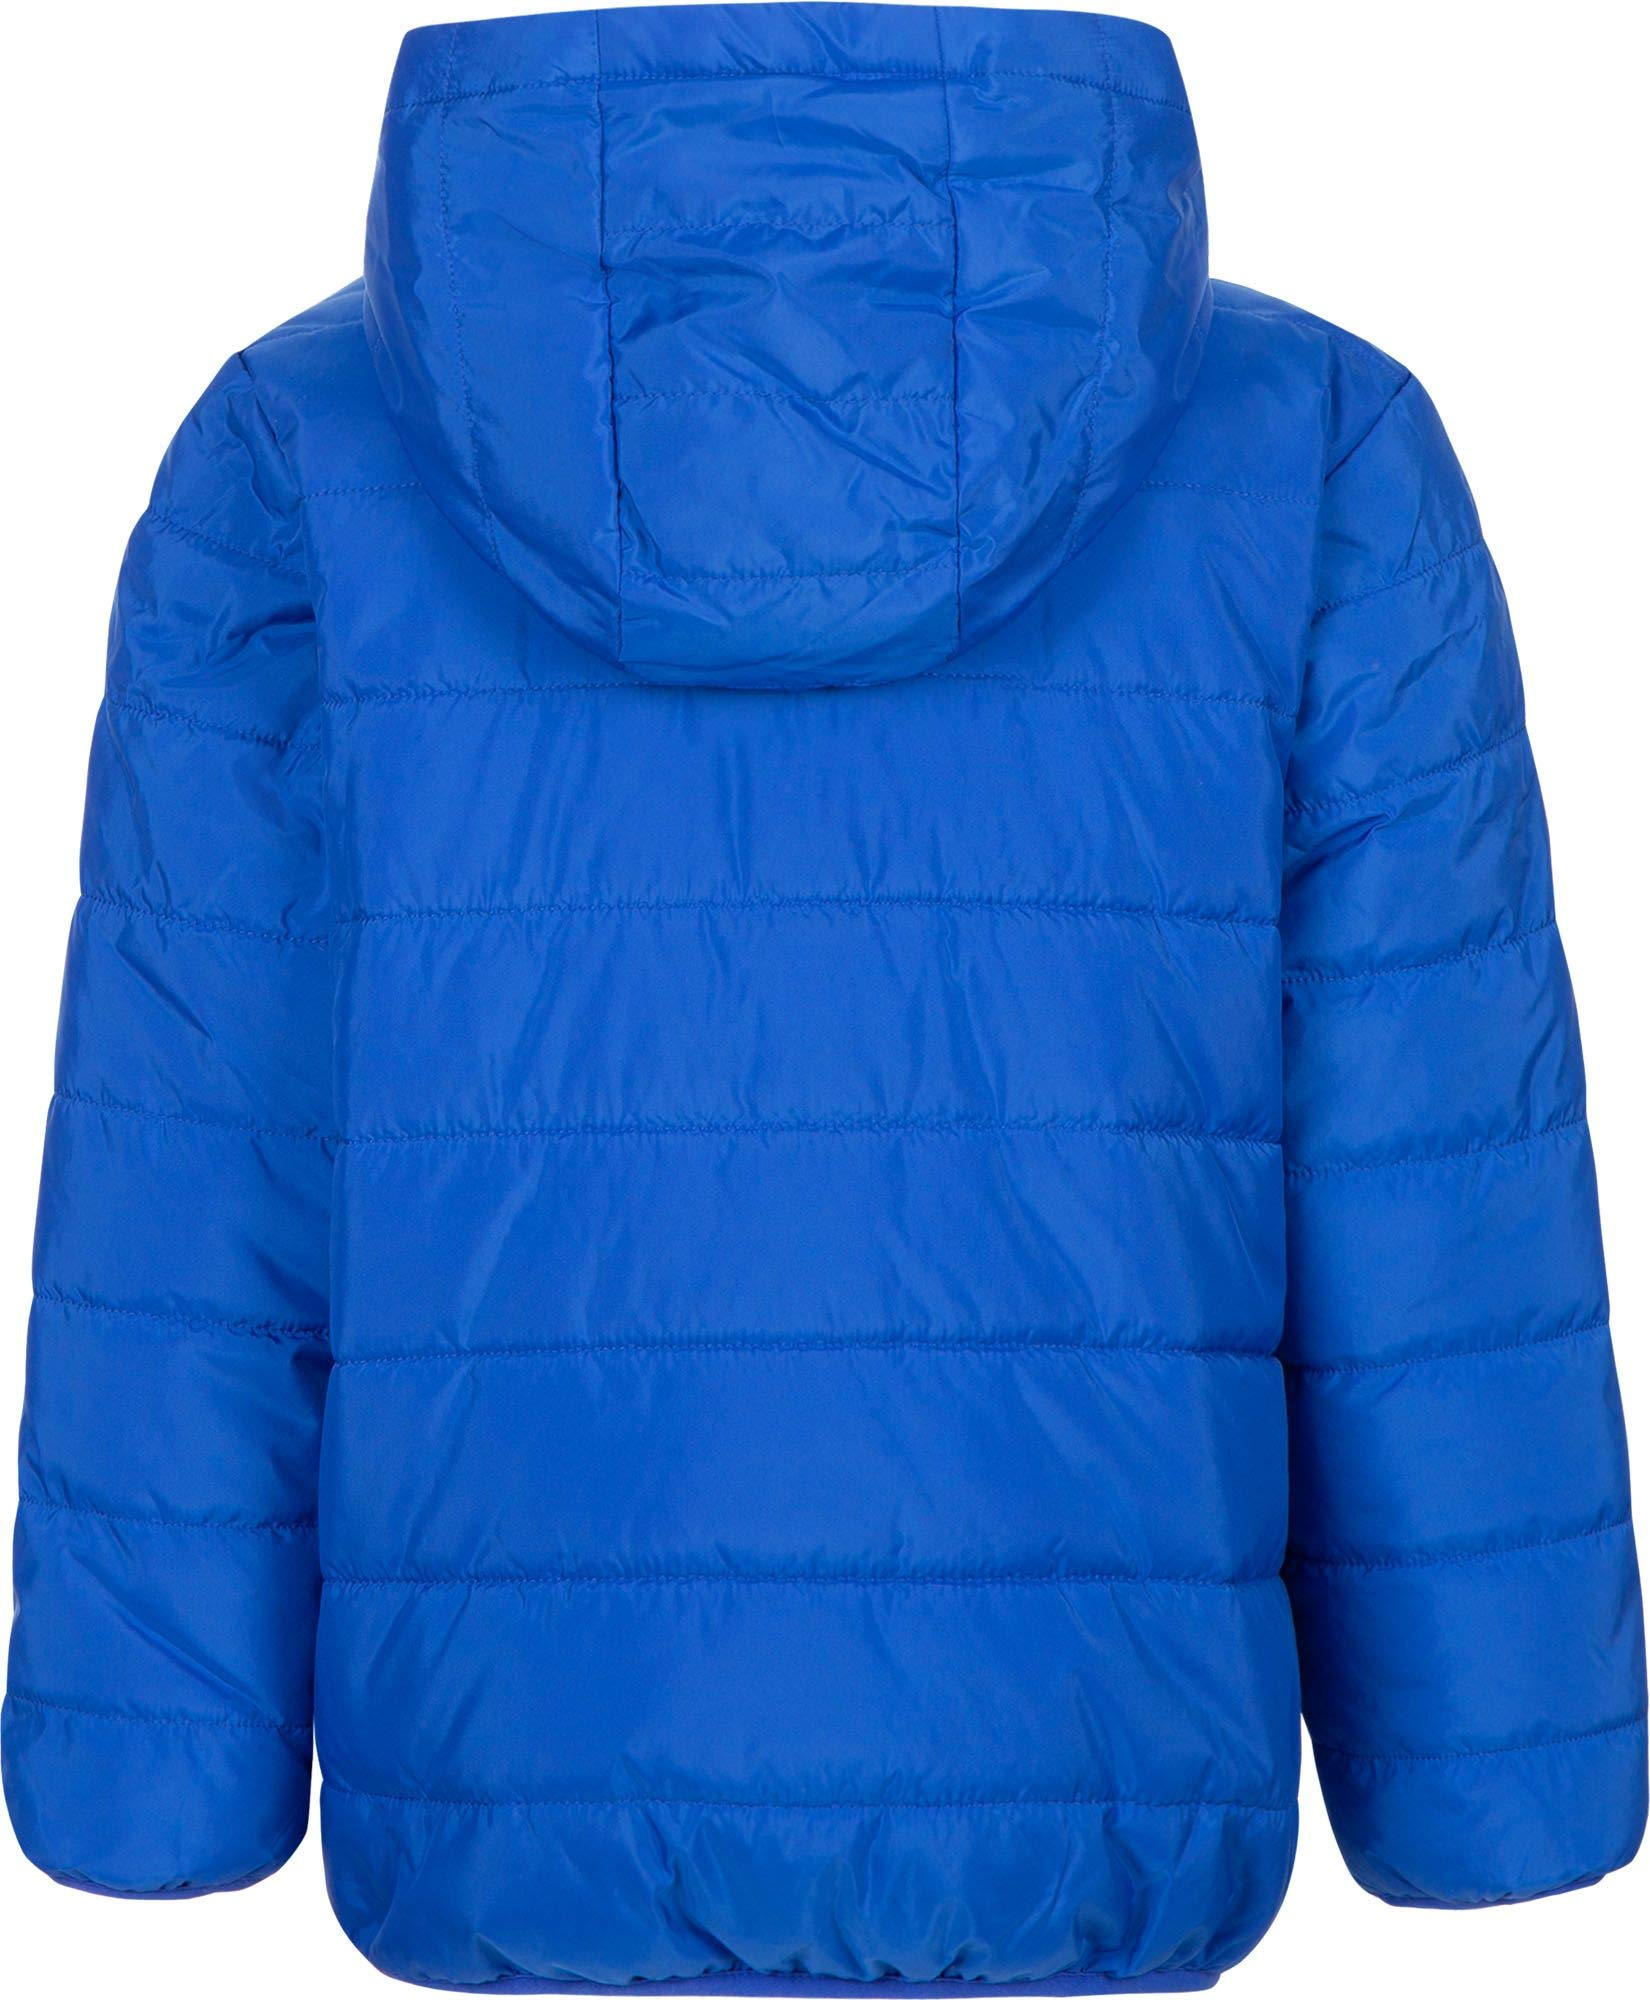 Nike Boy's Polyfill Quilted Insulated Puffer Jacket (Game Royal/Black, 4) by Nike (Image #2)